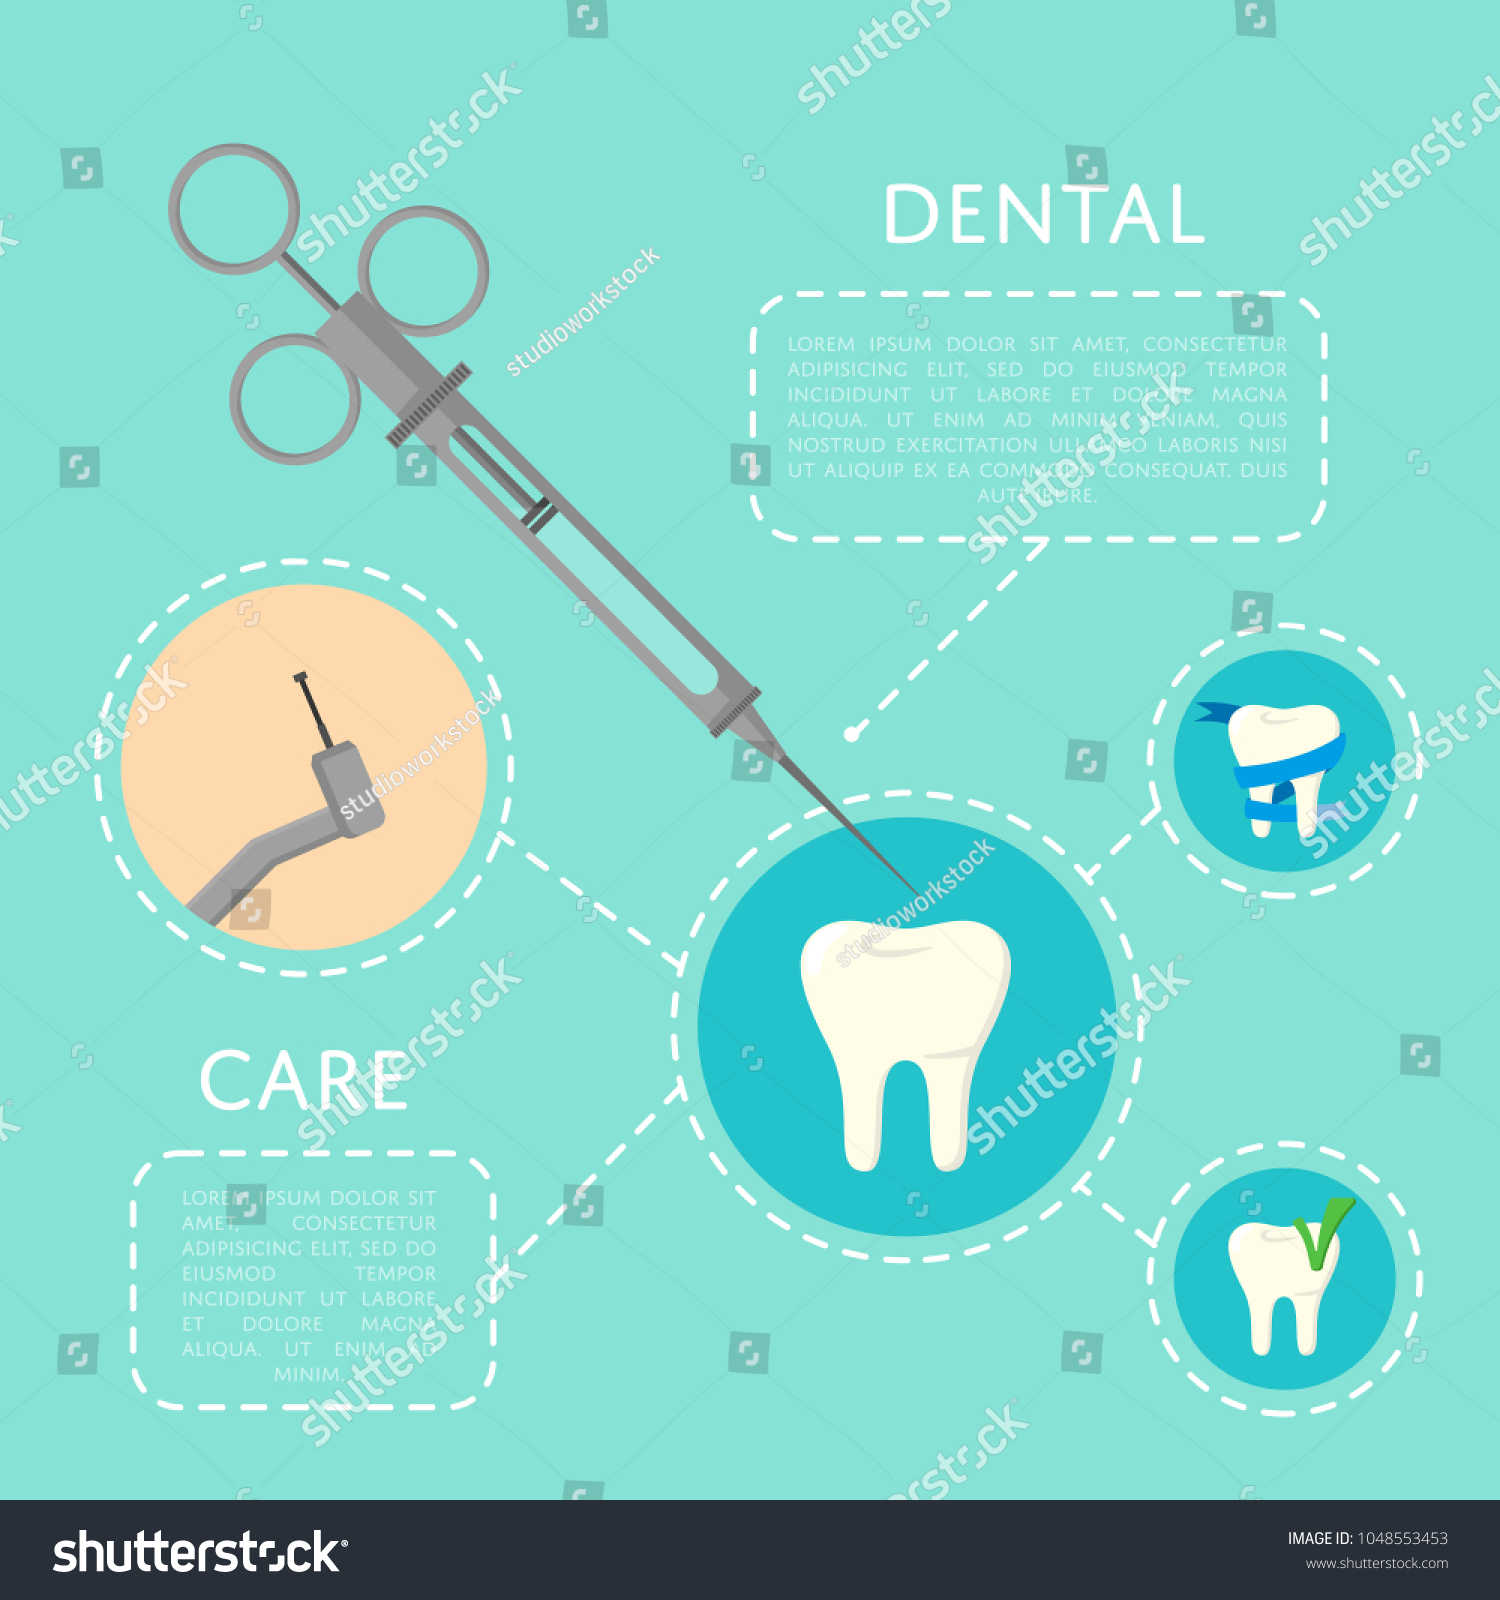 stock-vector-dental-care-banner-with-med